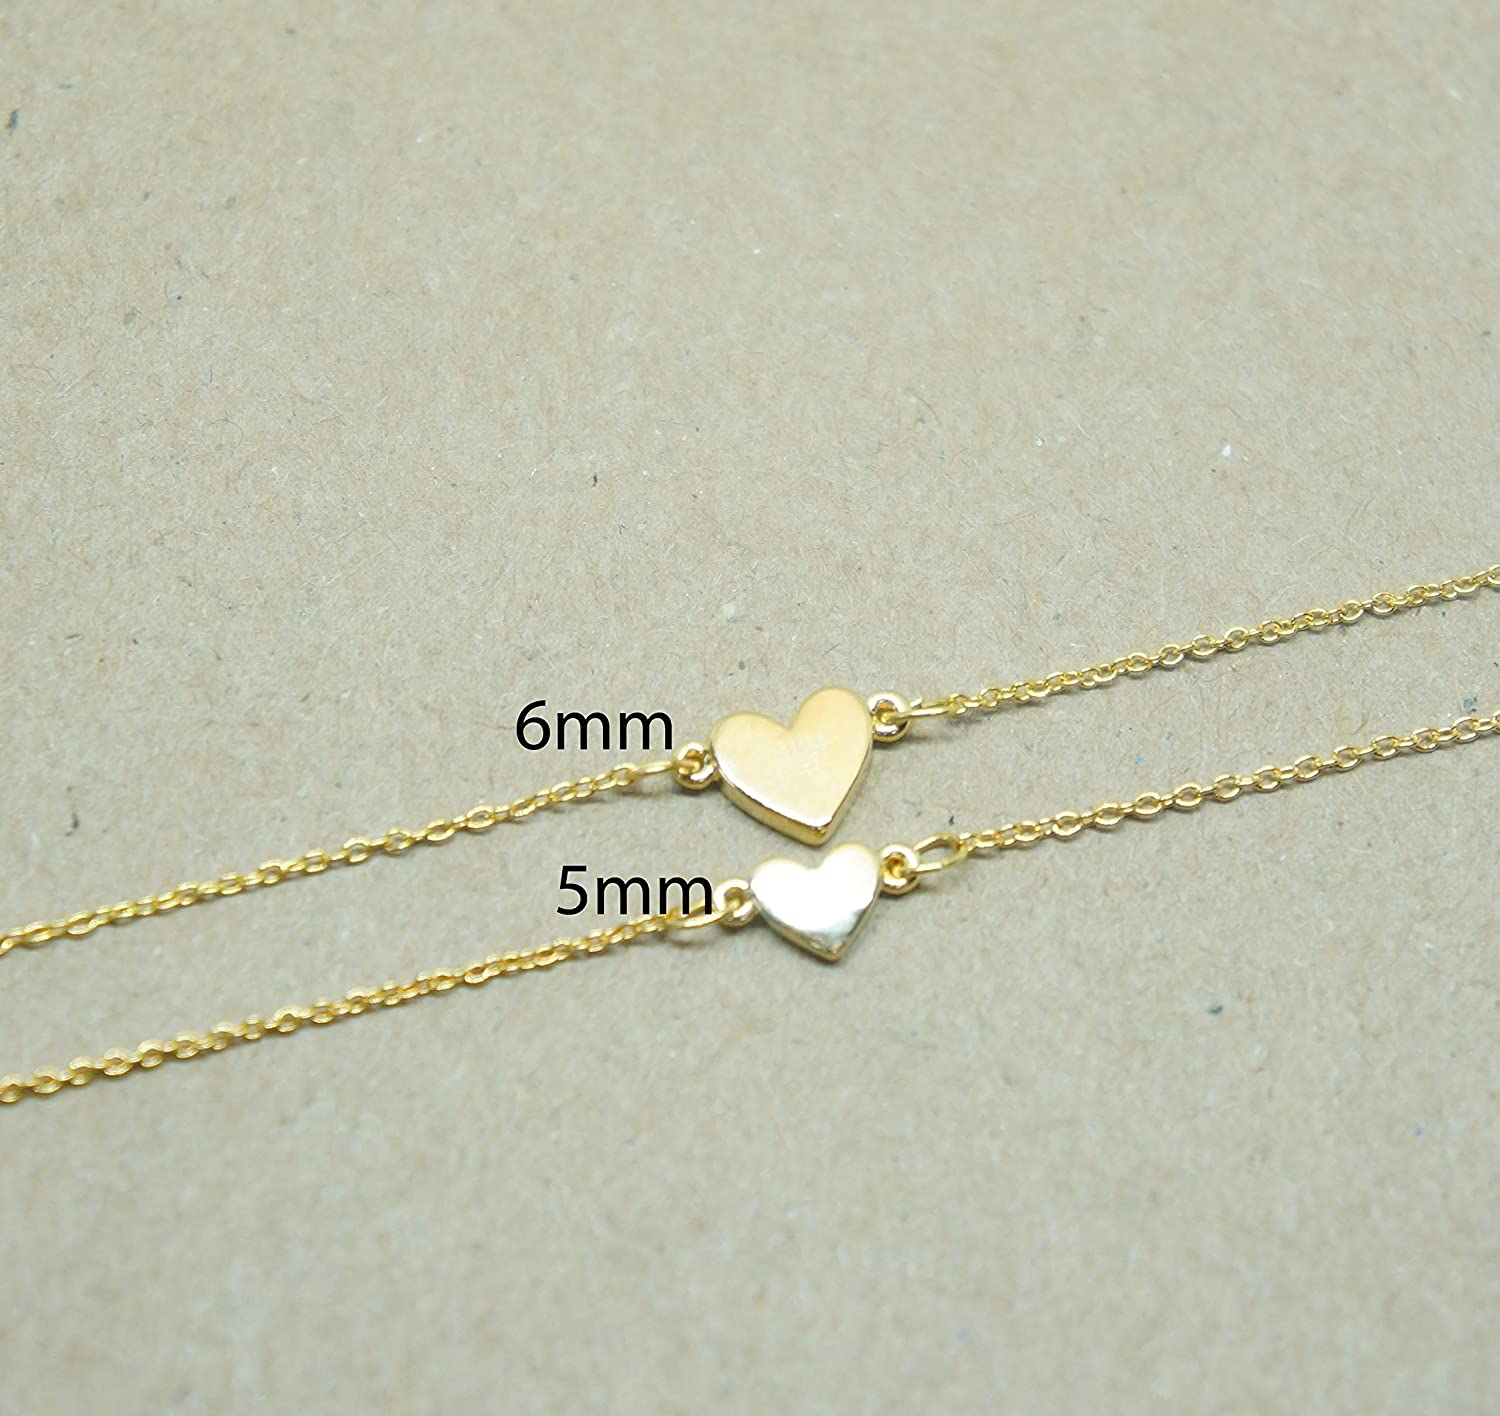 Two necklaces Friendship Necklace Personalized Mother Daughter Necklace Sisters Gift Idea Bond Necklaces Tiny Initial Heart Necklace Set